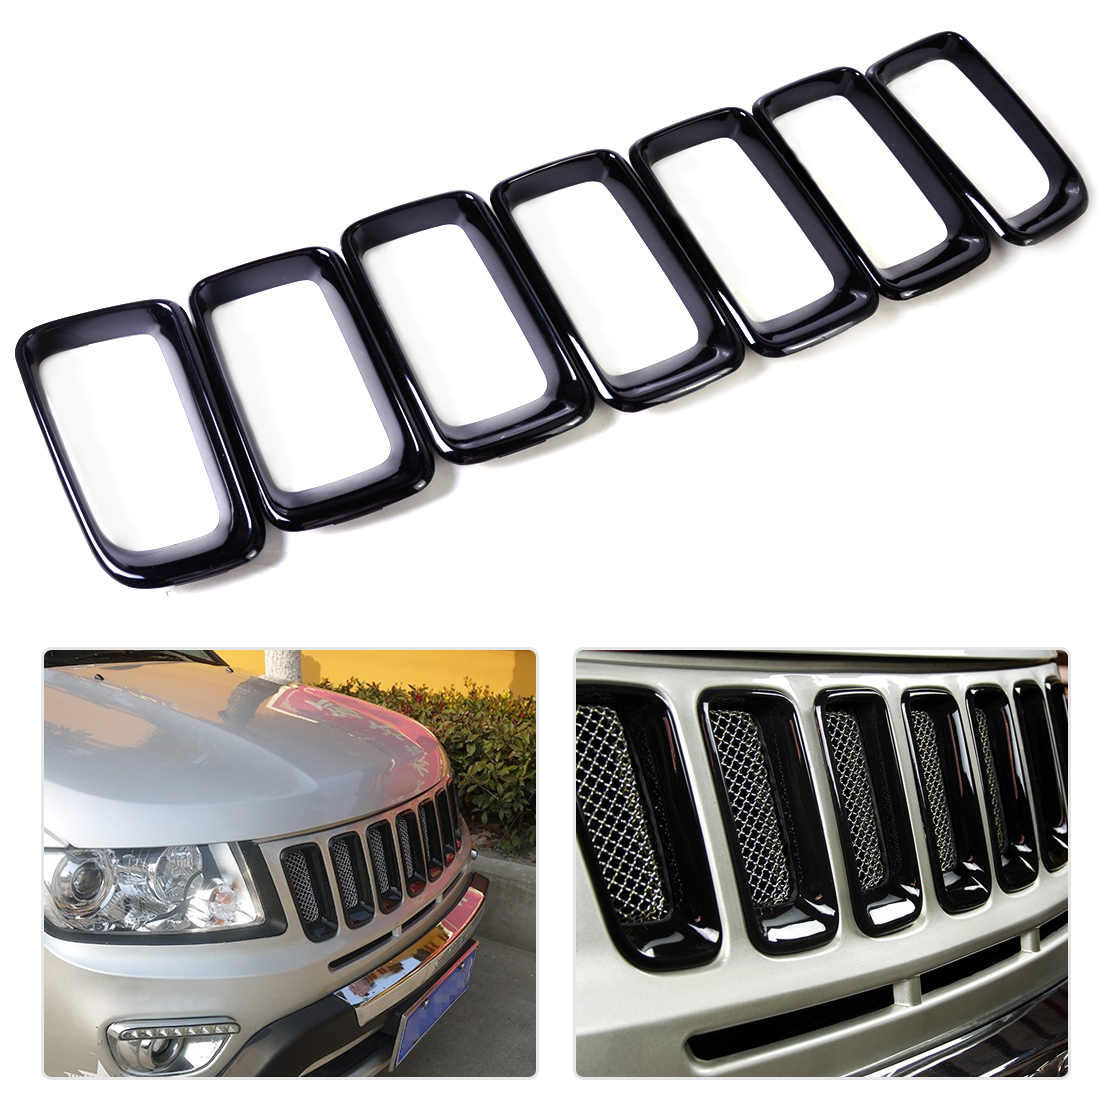 FOR jeep compass 2011-2016 ABS Chrome Front Grille Grill Ring Cover Trim 7pcs